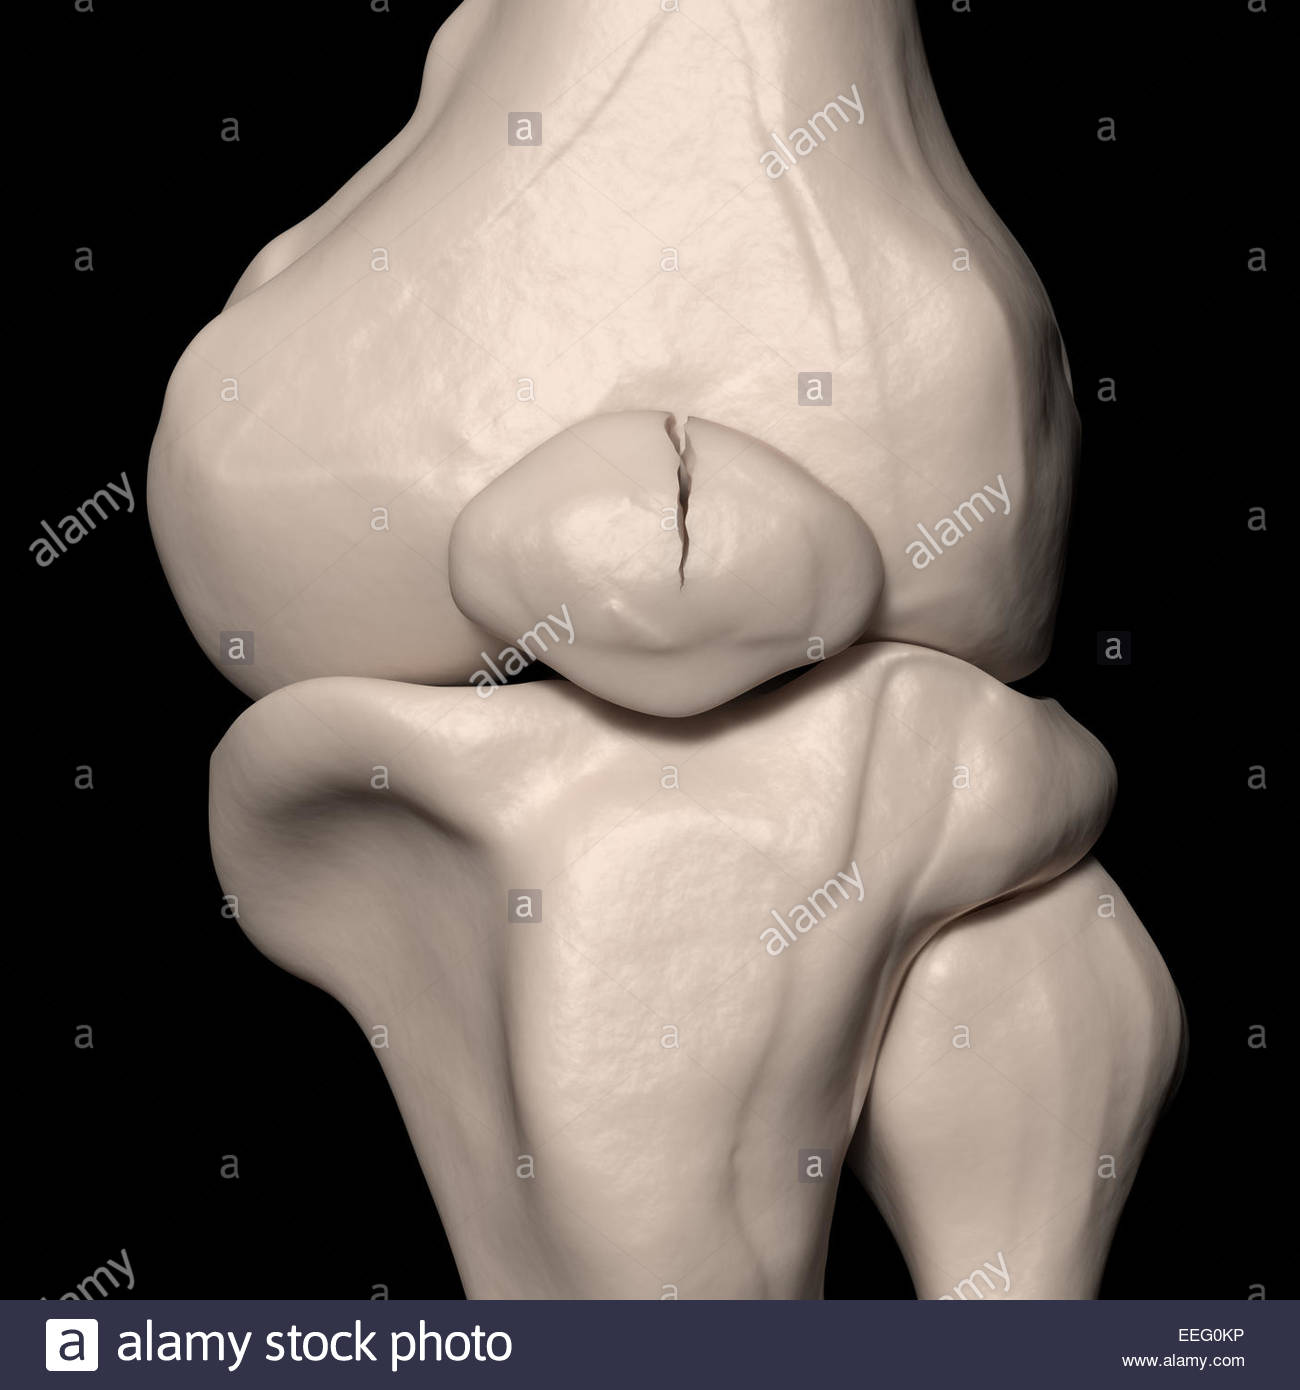 Digital medical illustration depicting a vertical patellar fracture. Anterior (front) view. Stock Photo